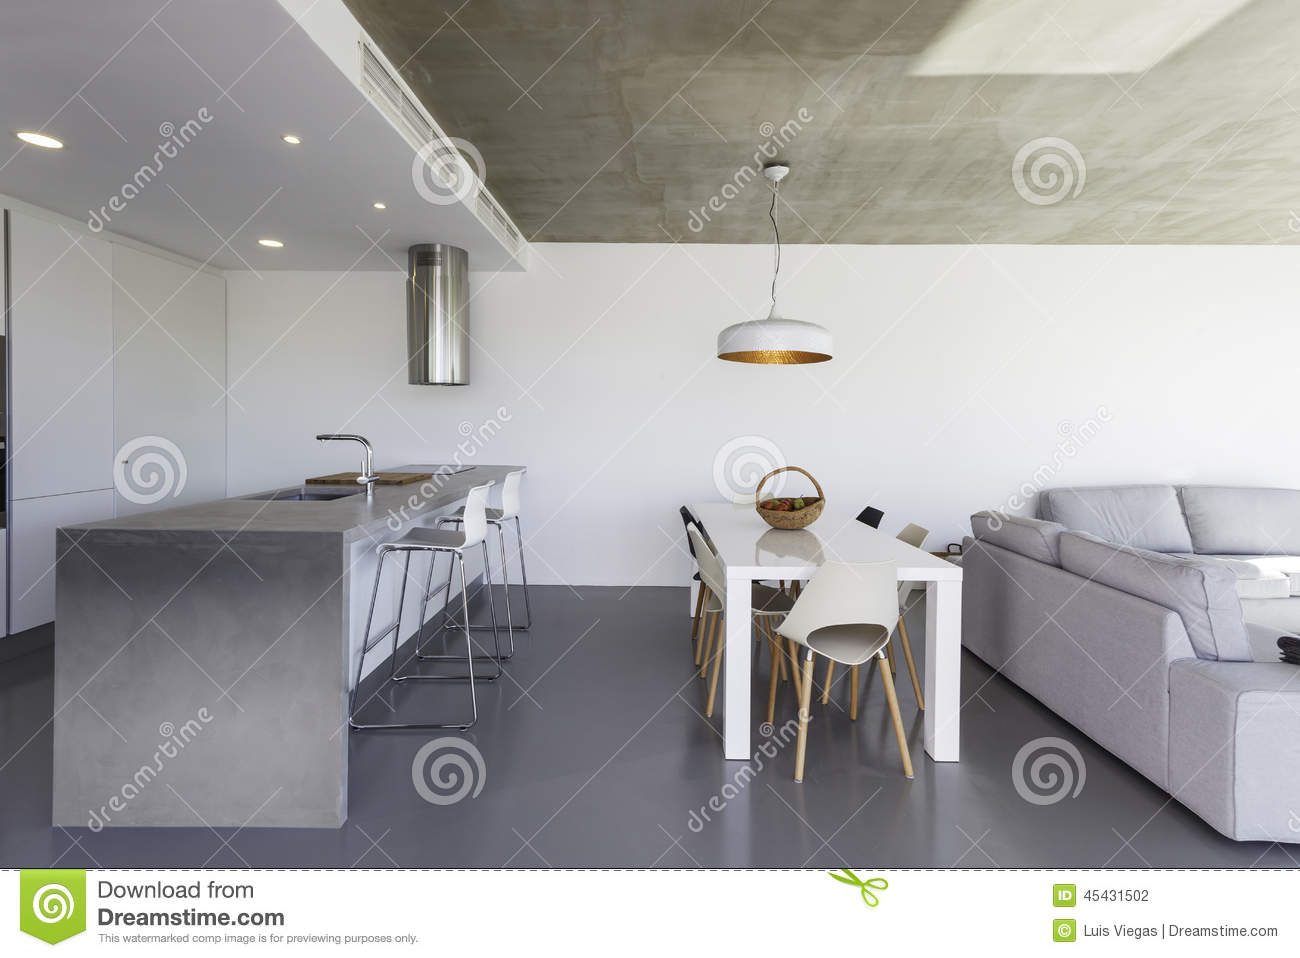 Gray Tile Floor Kitchen Tile Floor In Modern Kitchen Royalty Free Stock Image Image 7250536